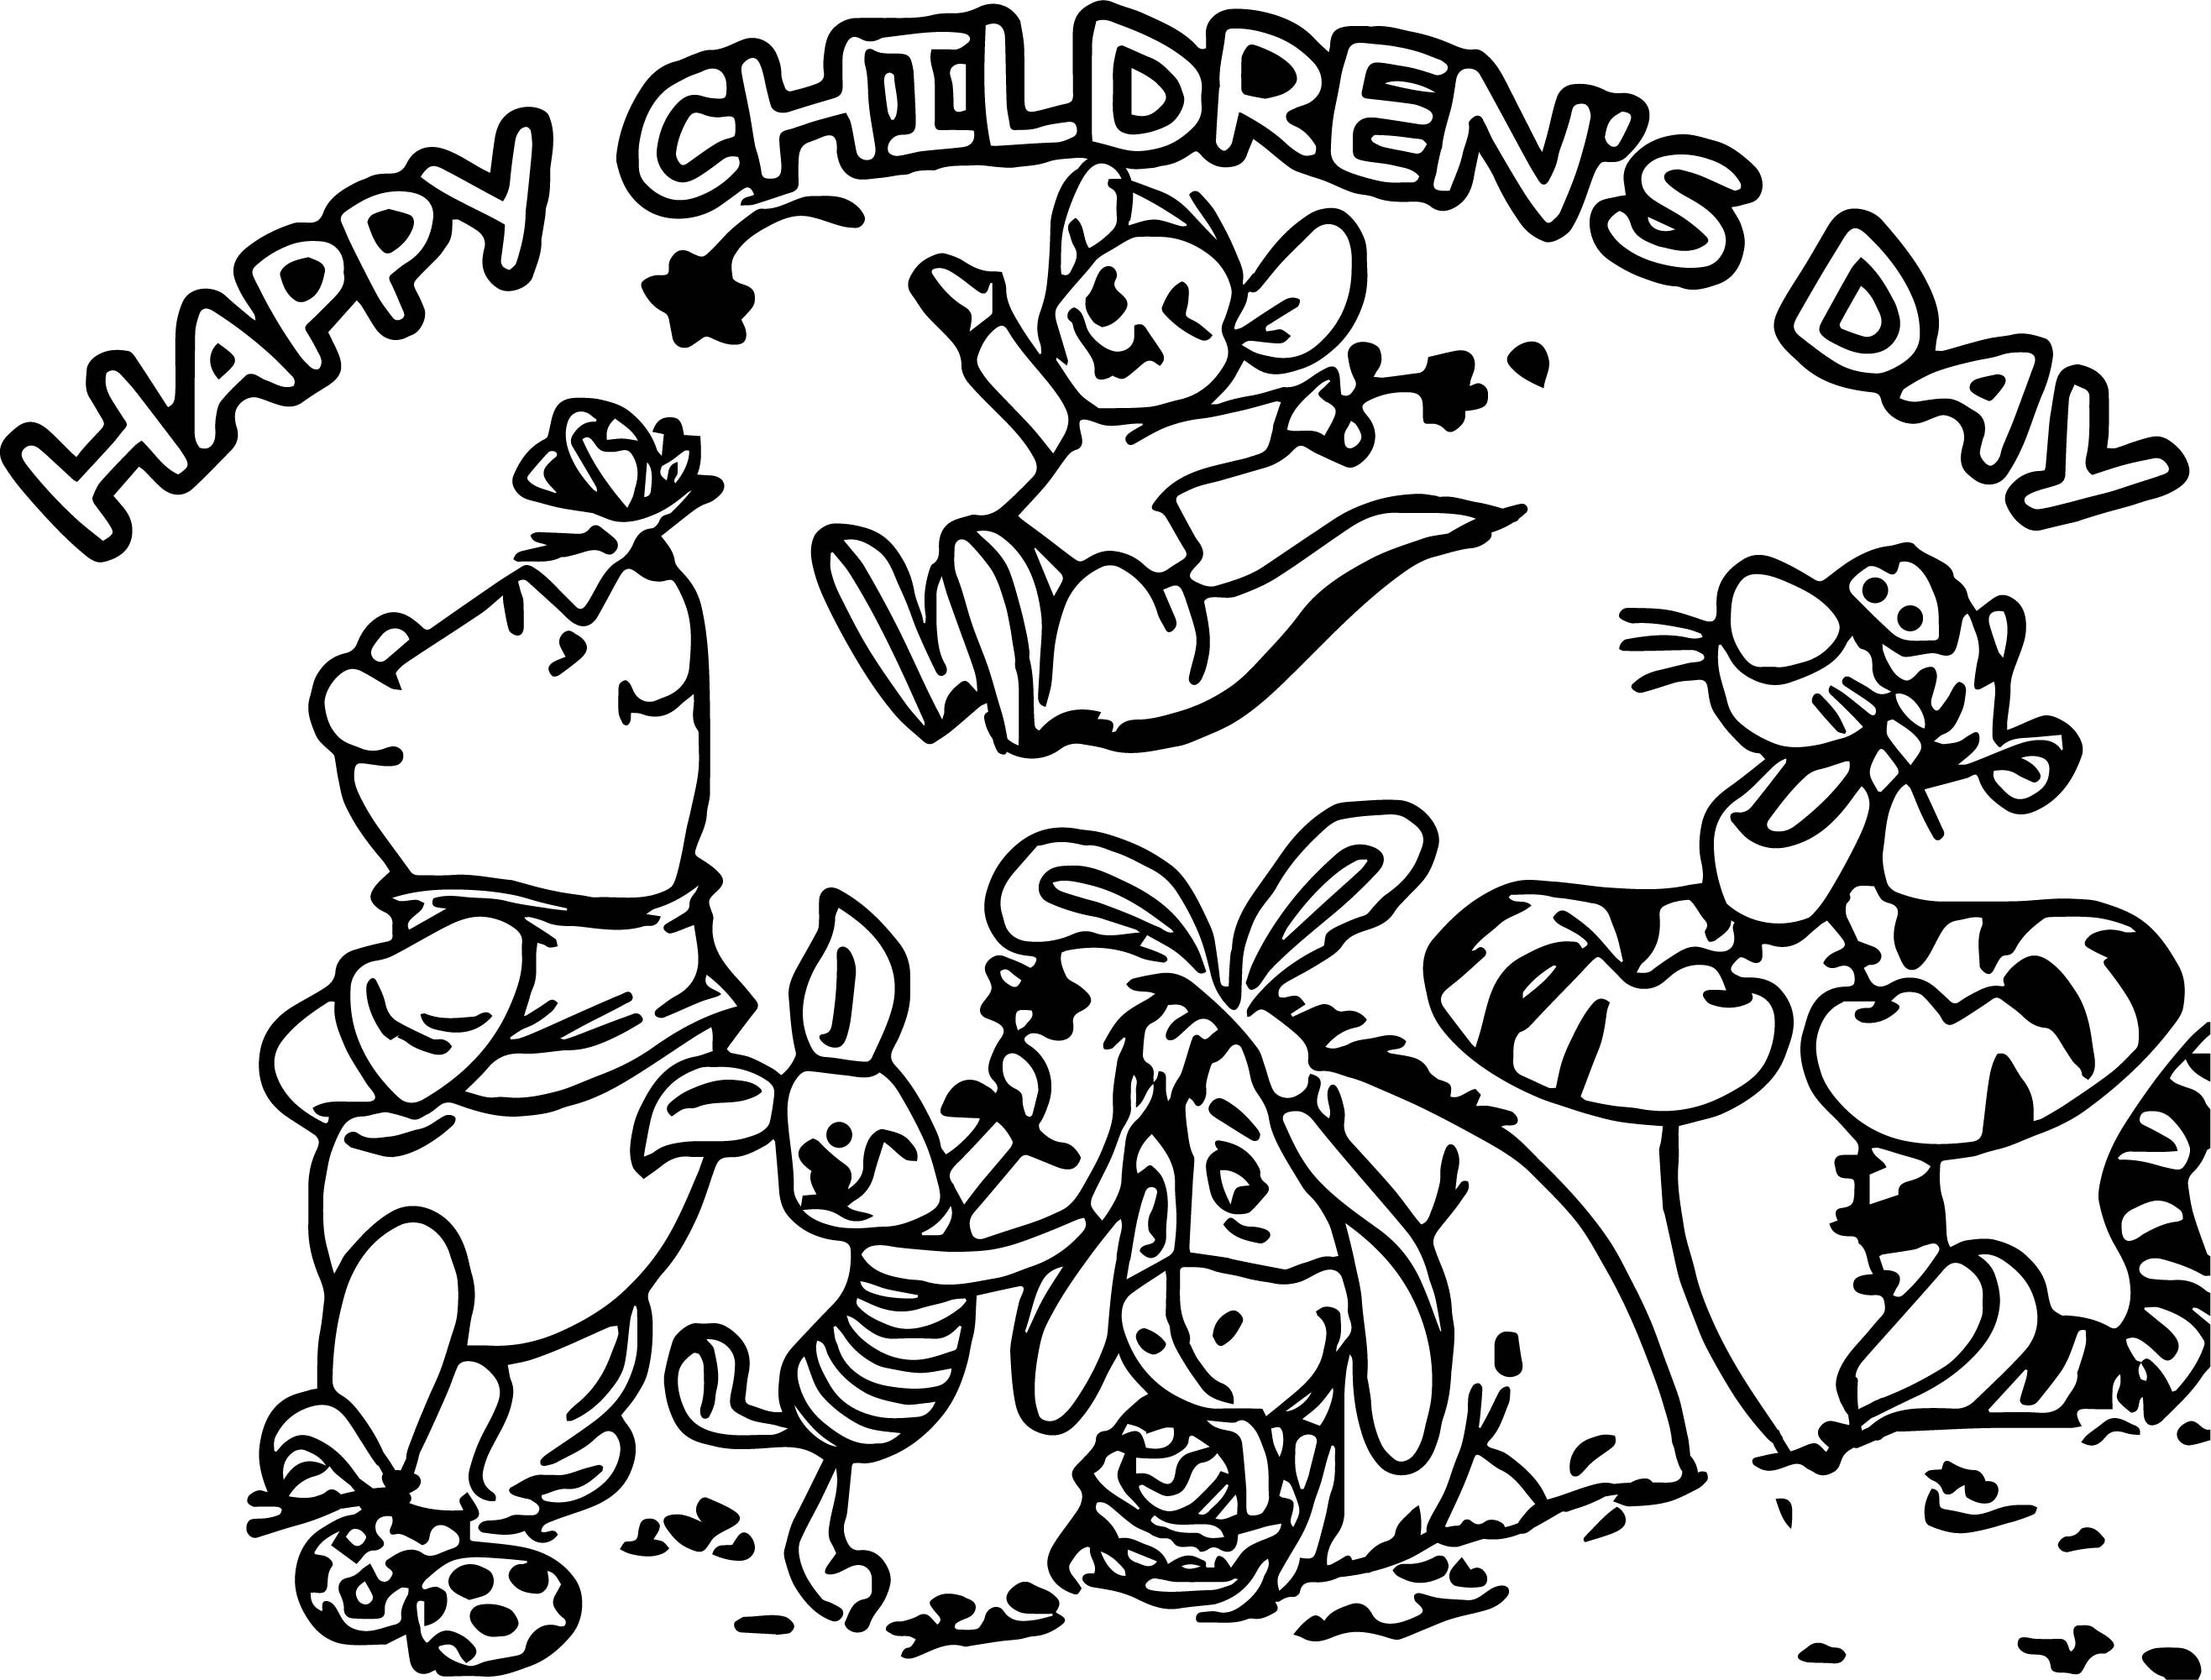 2633x2001 Childrens Animal Coloring Pages Unique Happy Childrens Day Animal